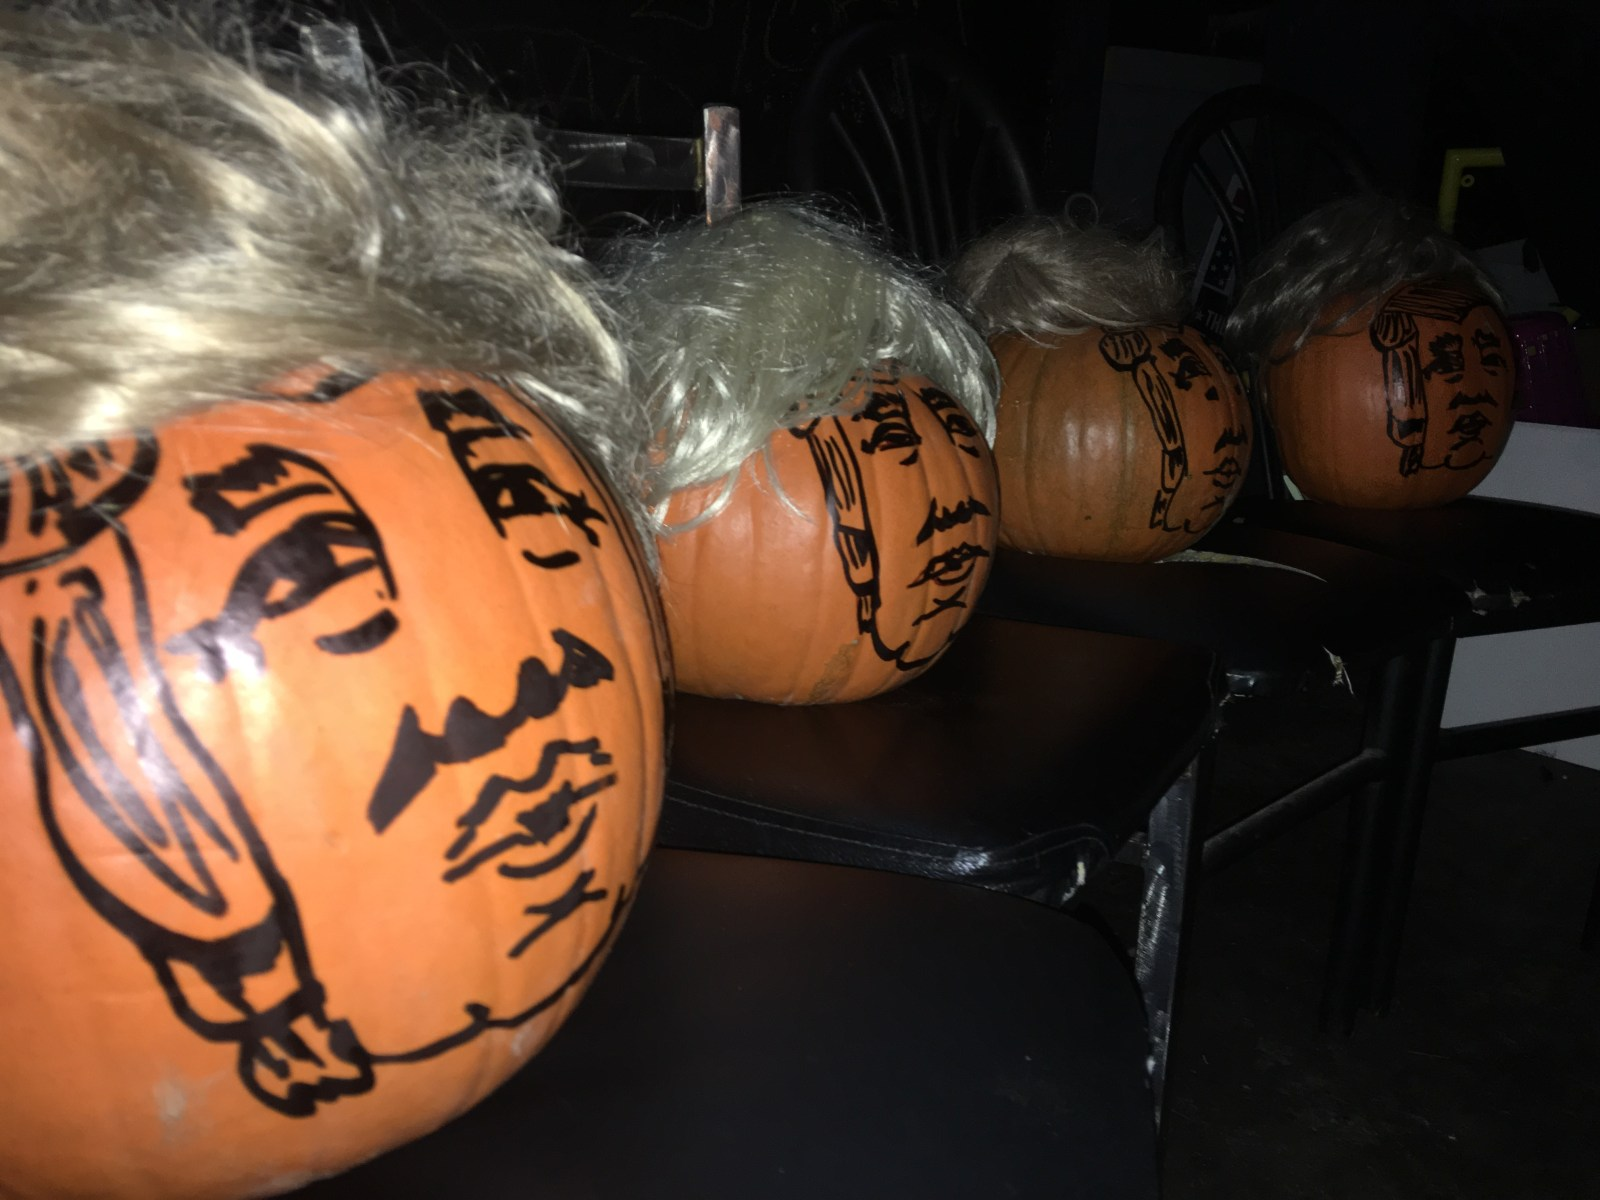 Halloween pumpkins Smashing Trumpkins Donald Trump presidential candidate game smash PDX Portland late-night talk show comedy comedian Who's the Ross? Aaron improv sketch humor funny Dante's